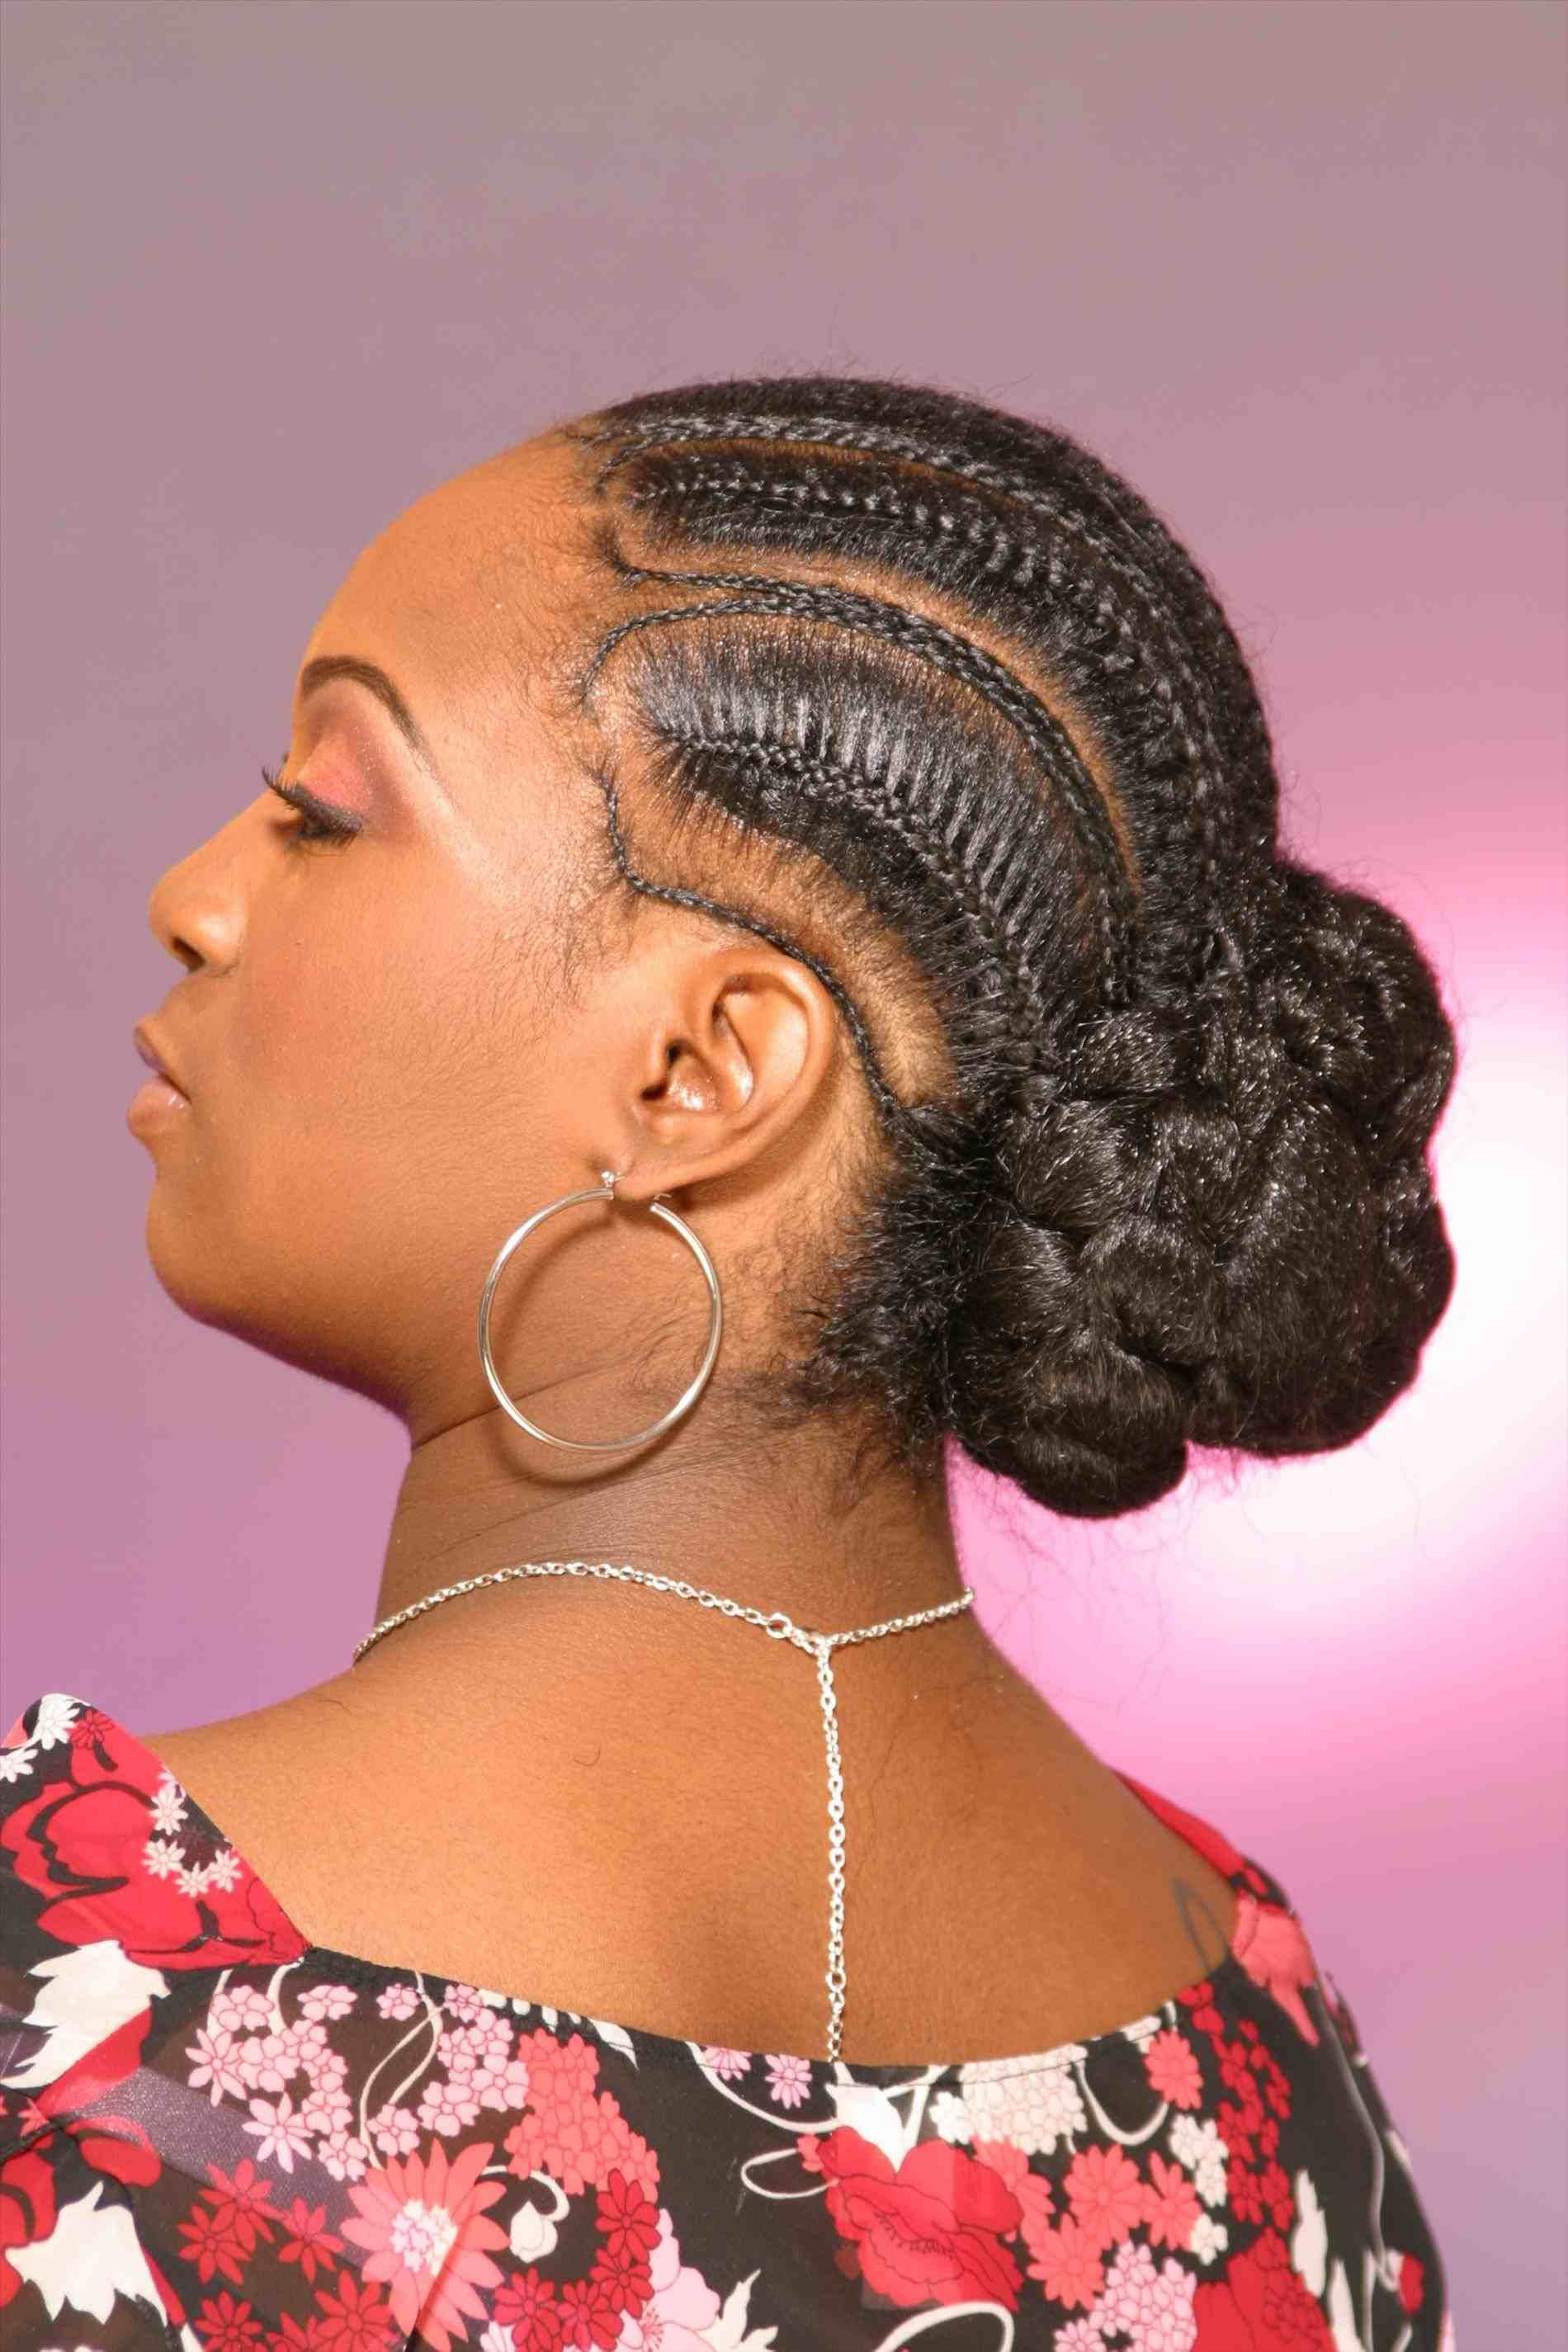 Goddess Braids 1 Weave African Braids Black Girl Braids Short Haircut After Profile Short Layers Give Volume To The Back While L Har Och Skonhet Skonhet